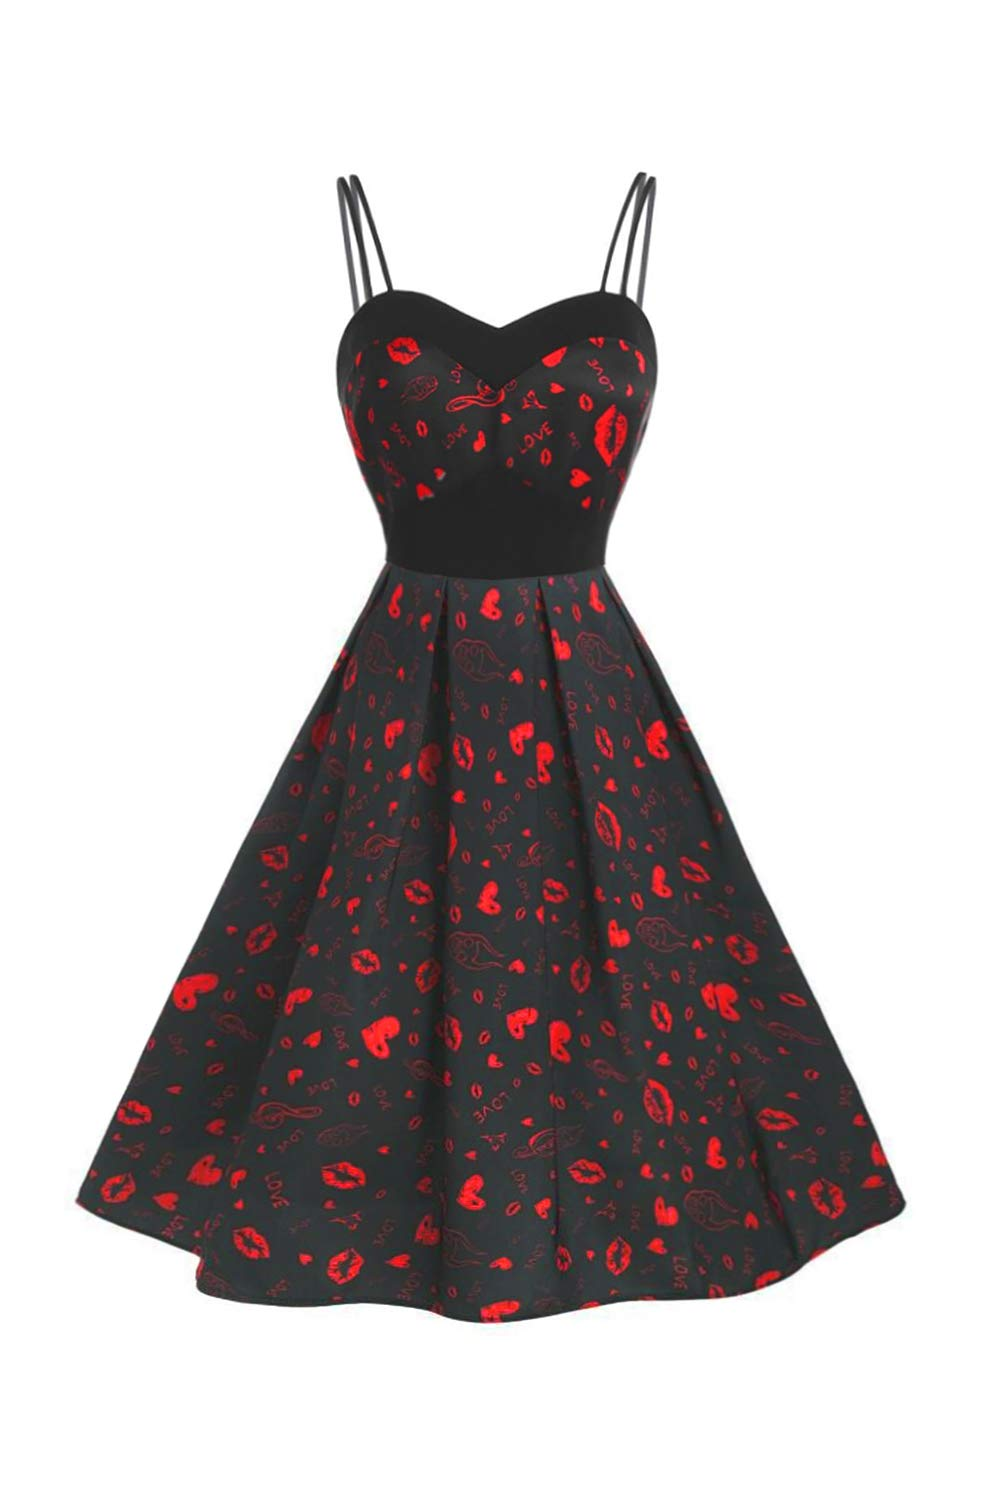 Women's 1950s Retro Vintage Cocktail Party Swing Dress Casual Evening Wedding Party Sleeveless Cami Dresses